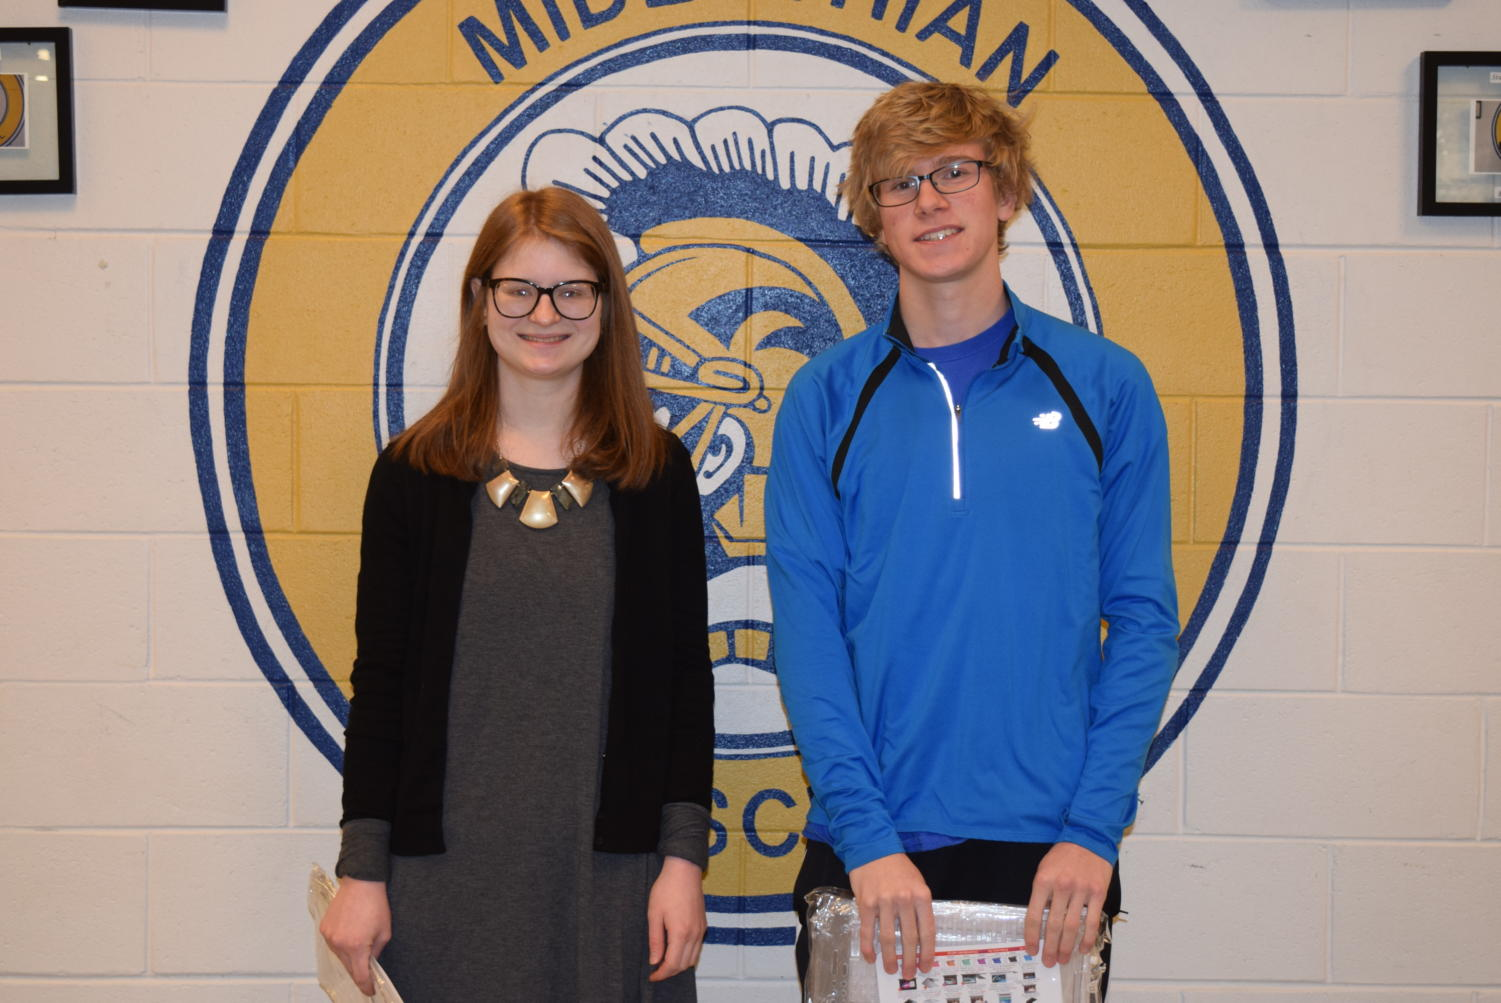 Congratulations, @GoMidlo January Students of the Month: Liza Wimbish and Bradley Fellstrom